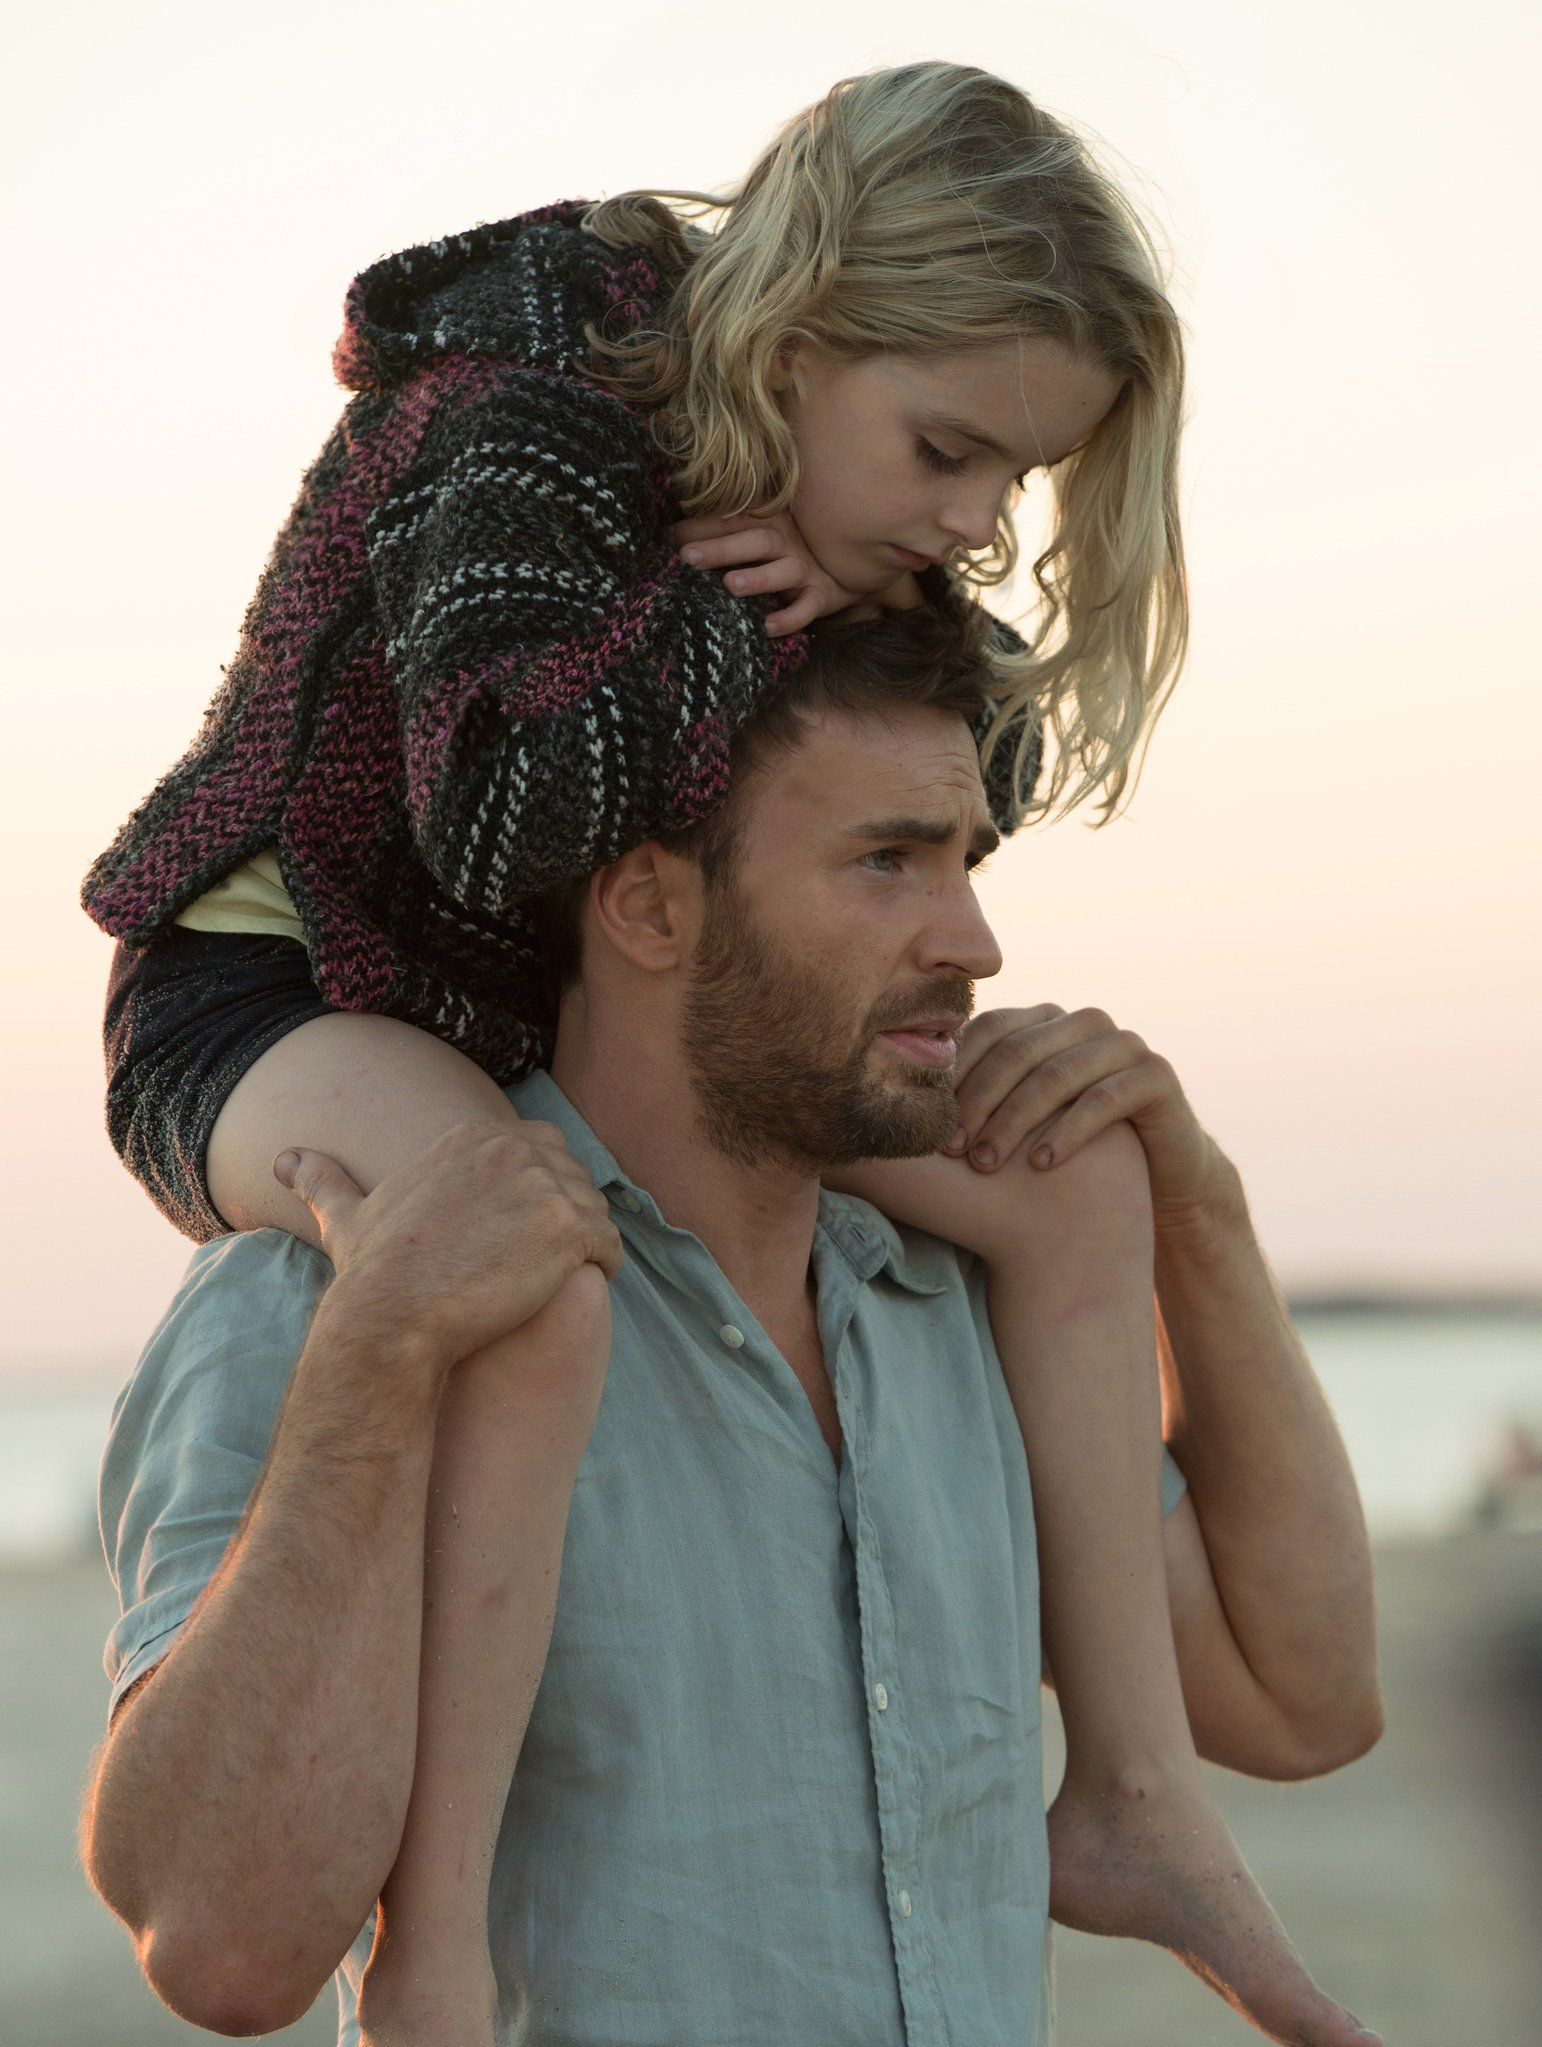 First look at Chris Evans in Marc Webb's upcoming drama film Gifted. The Fox Searchlight film will be released on April 12, 2017.